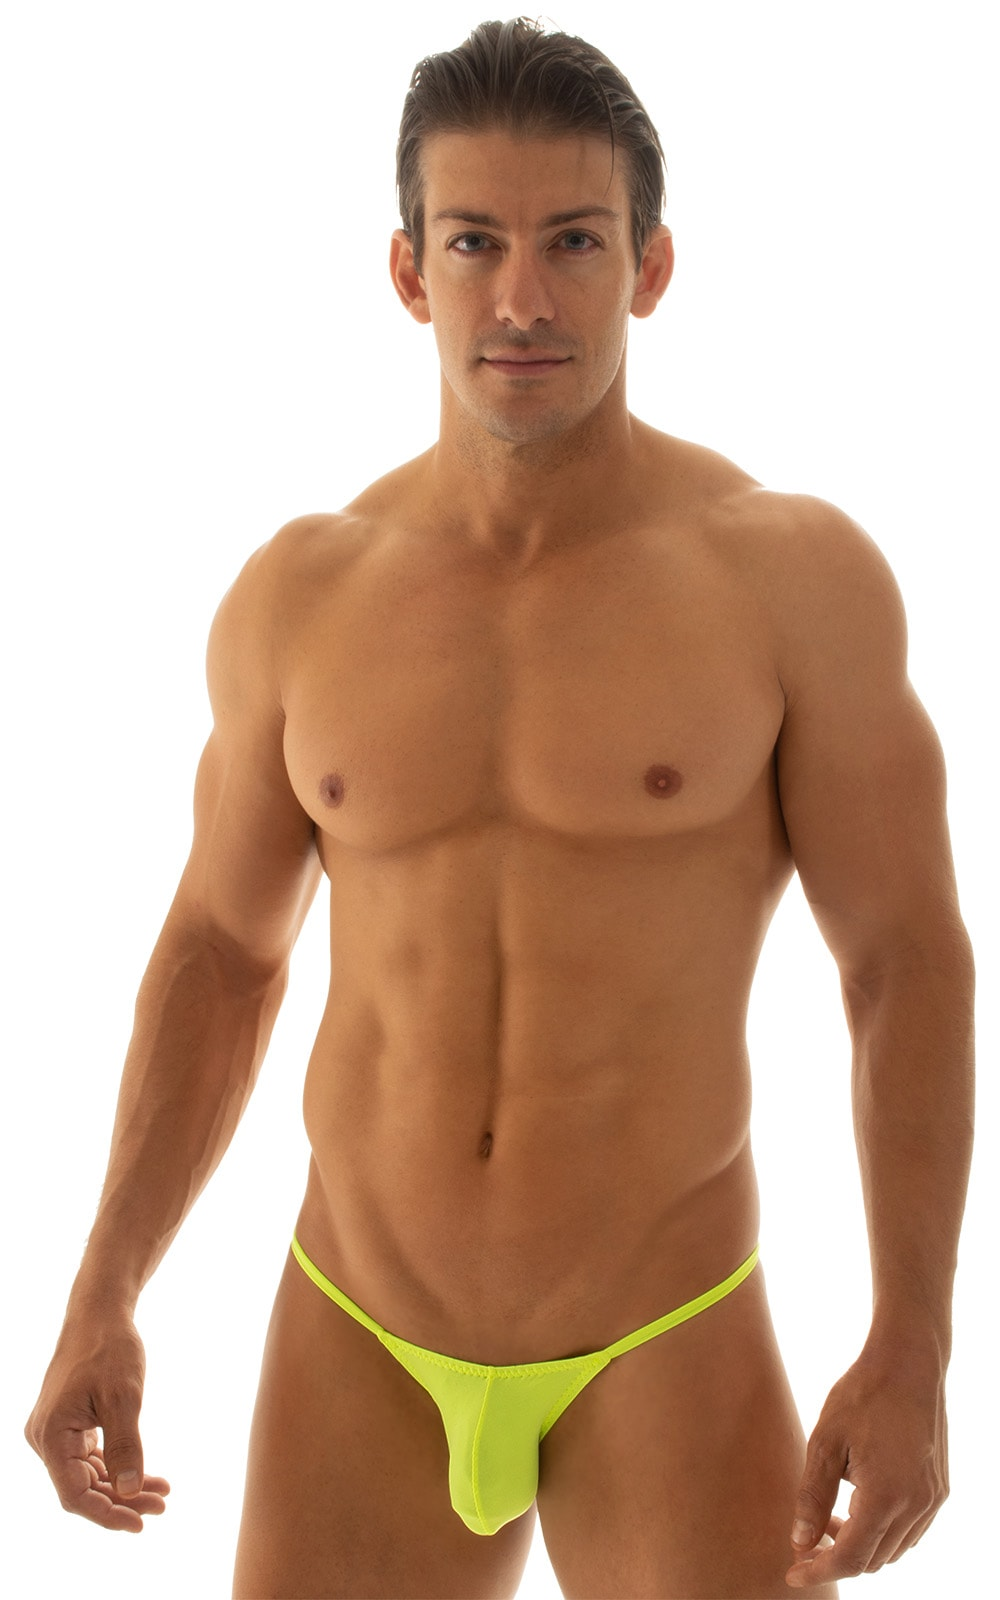 Stuffit Pouch Half Back Tanning Swimsuit in ThinSKINZ Chartreuse 1